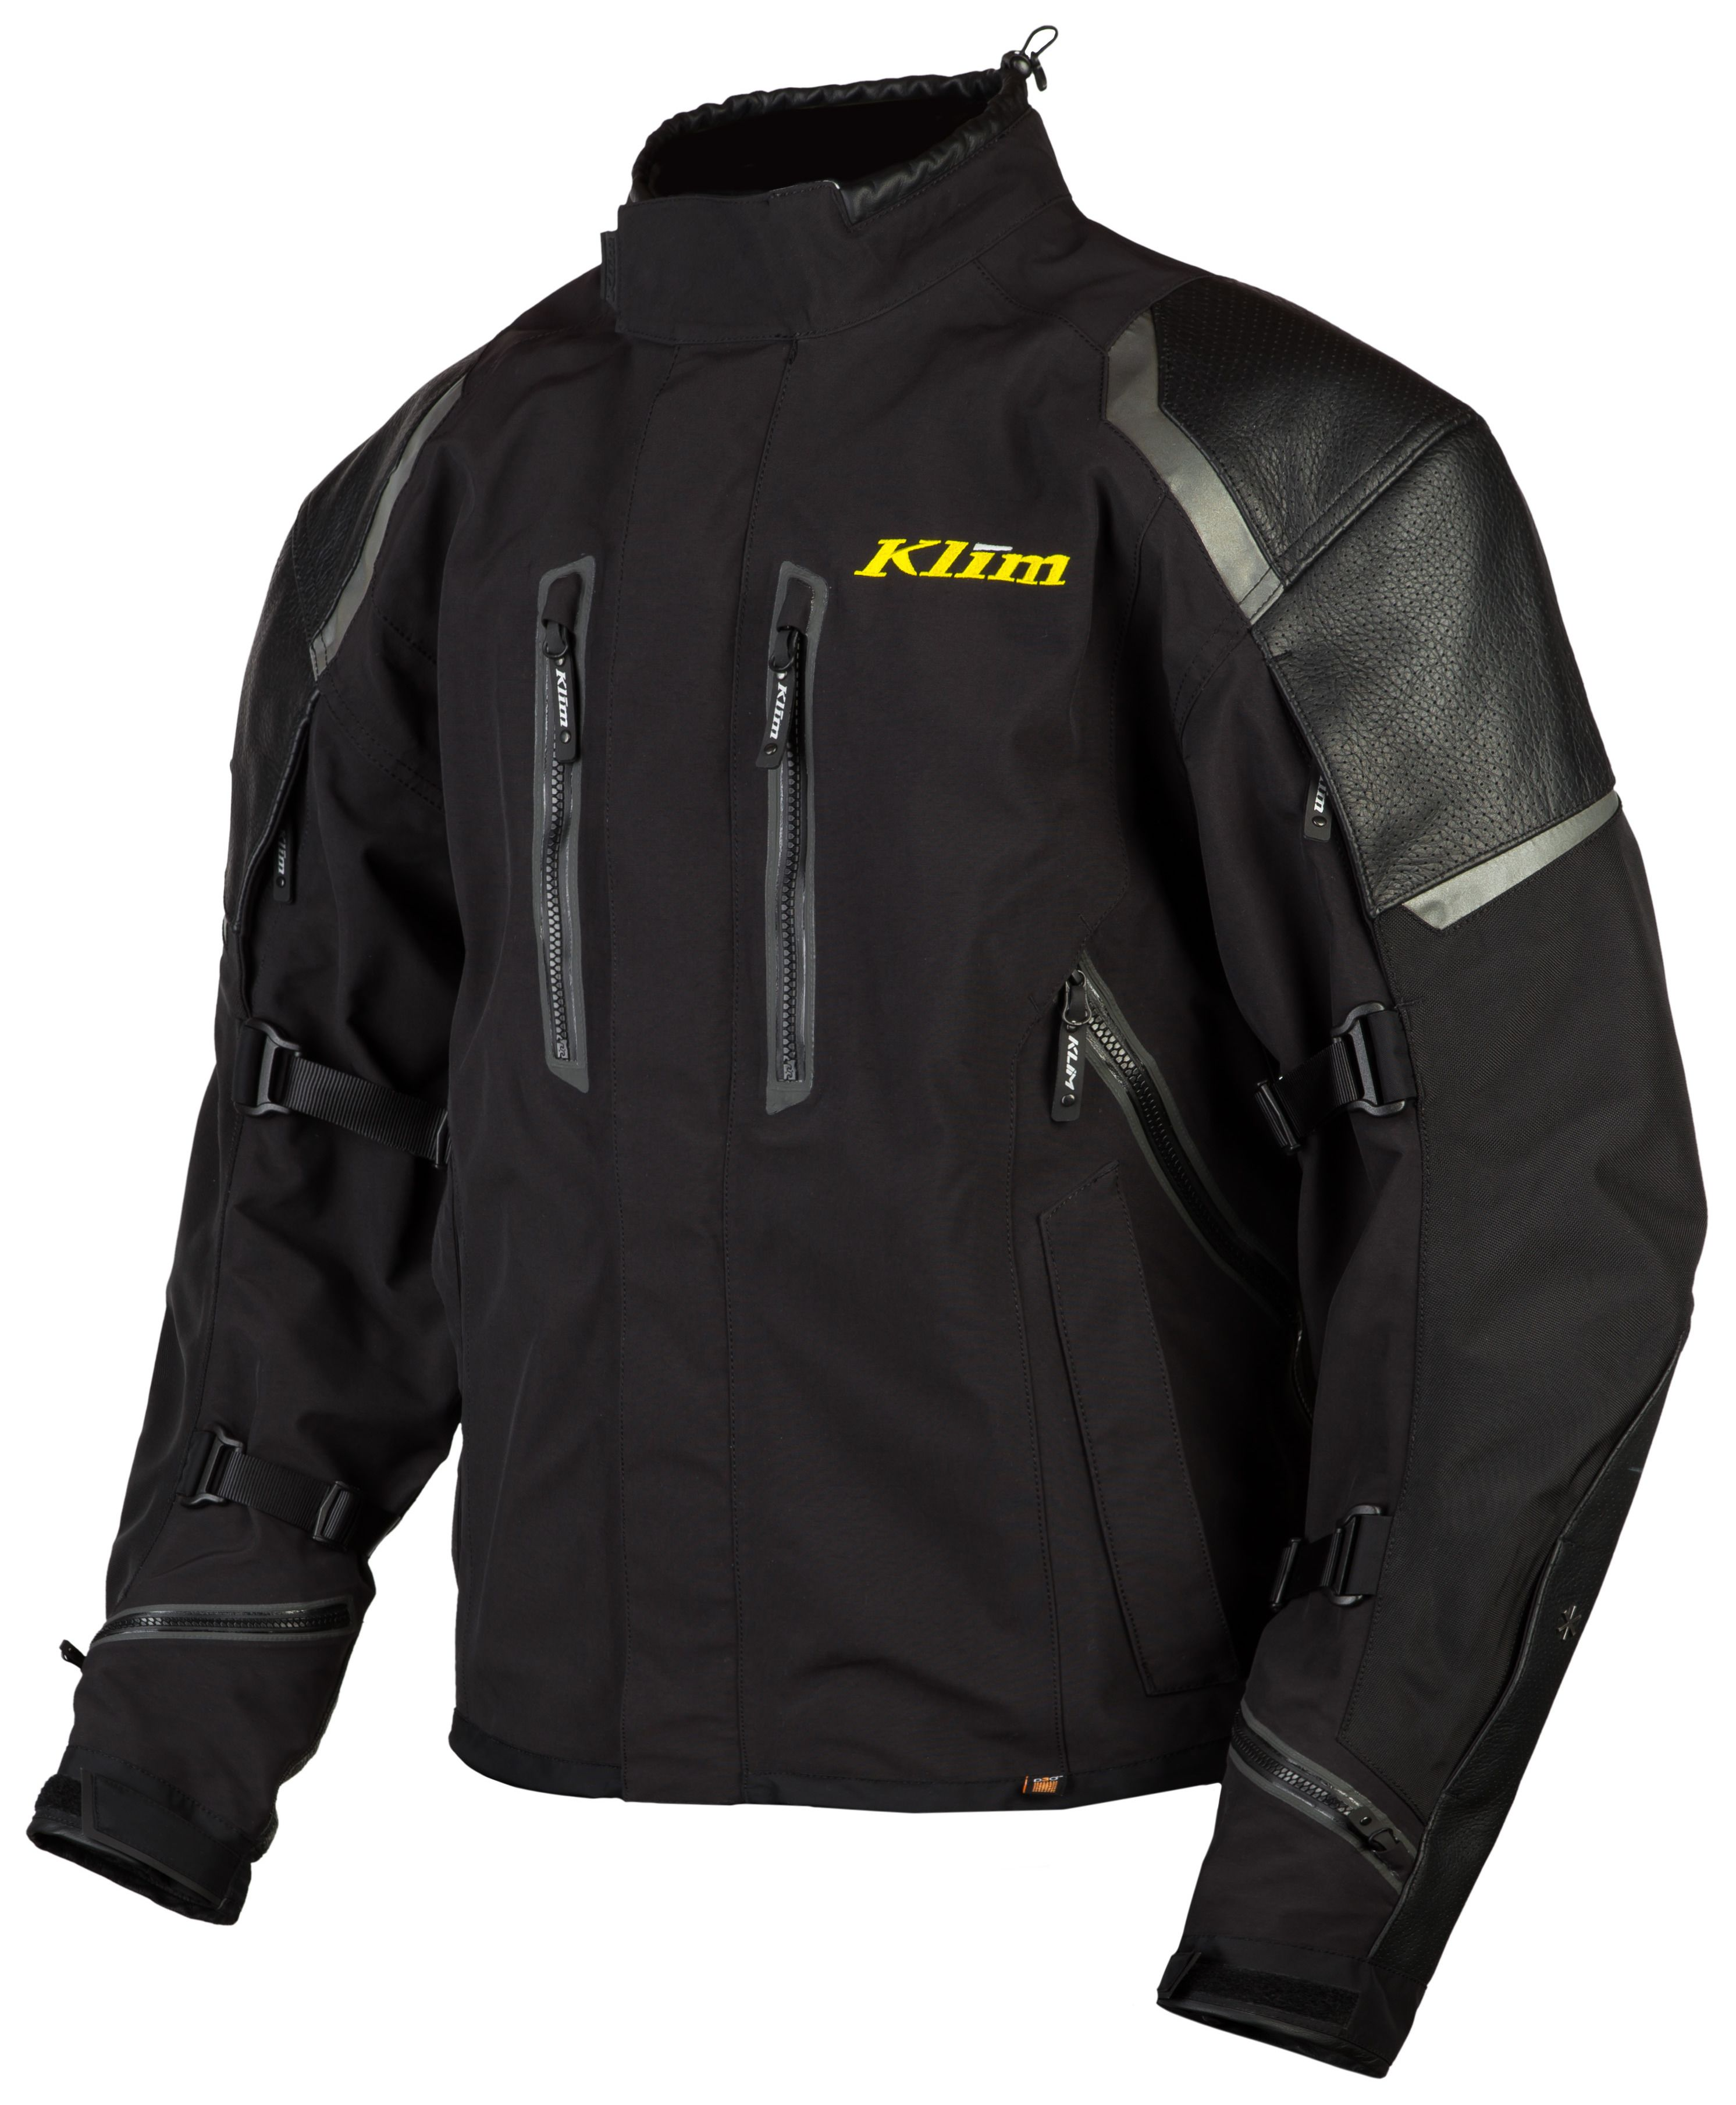 klim_apex_jacket.jpg